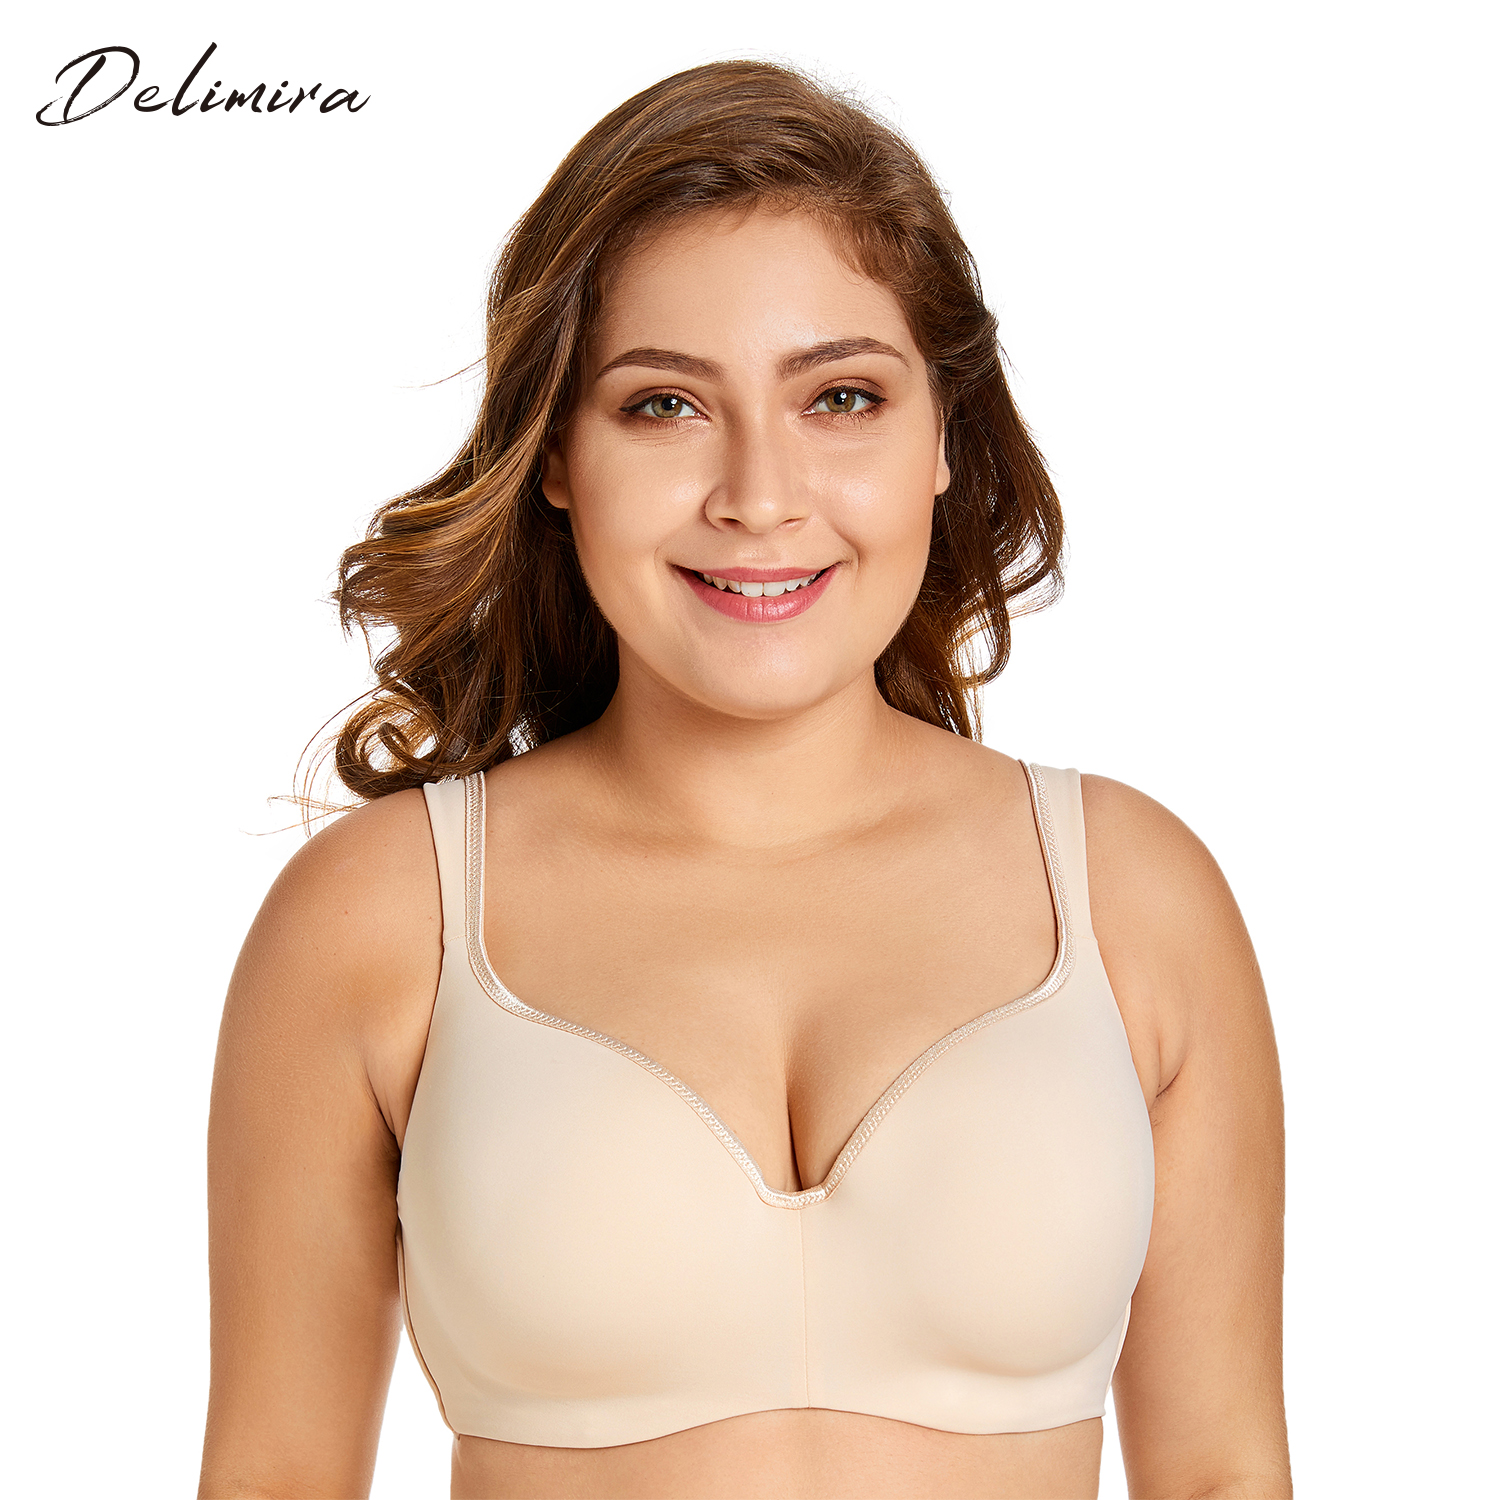 Delimira Women's Smooth Full Coverage Big Size T-Shirt Bra